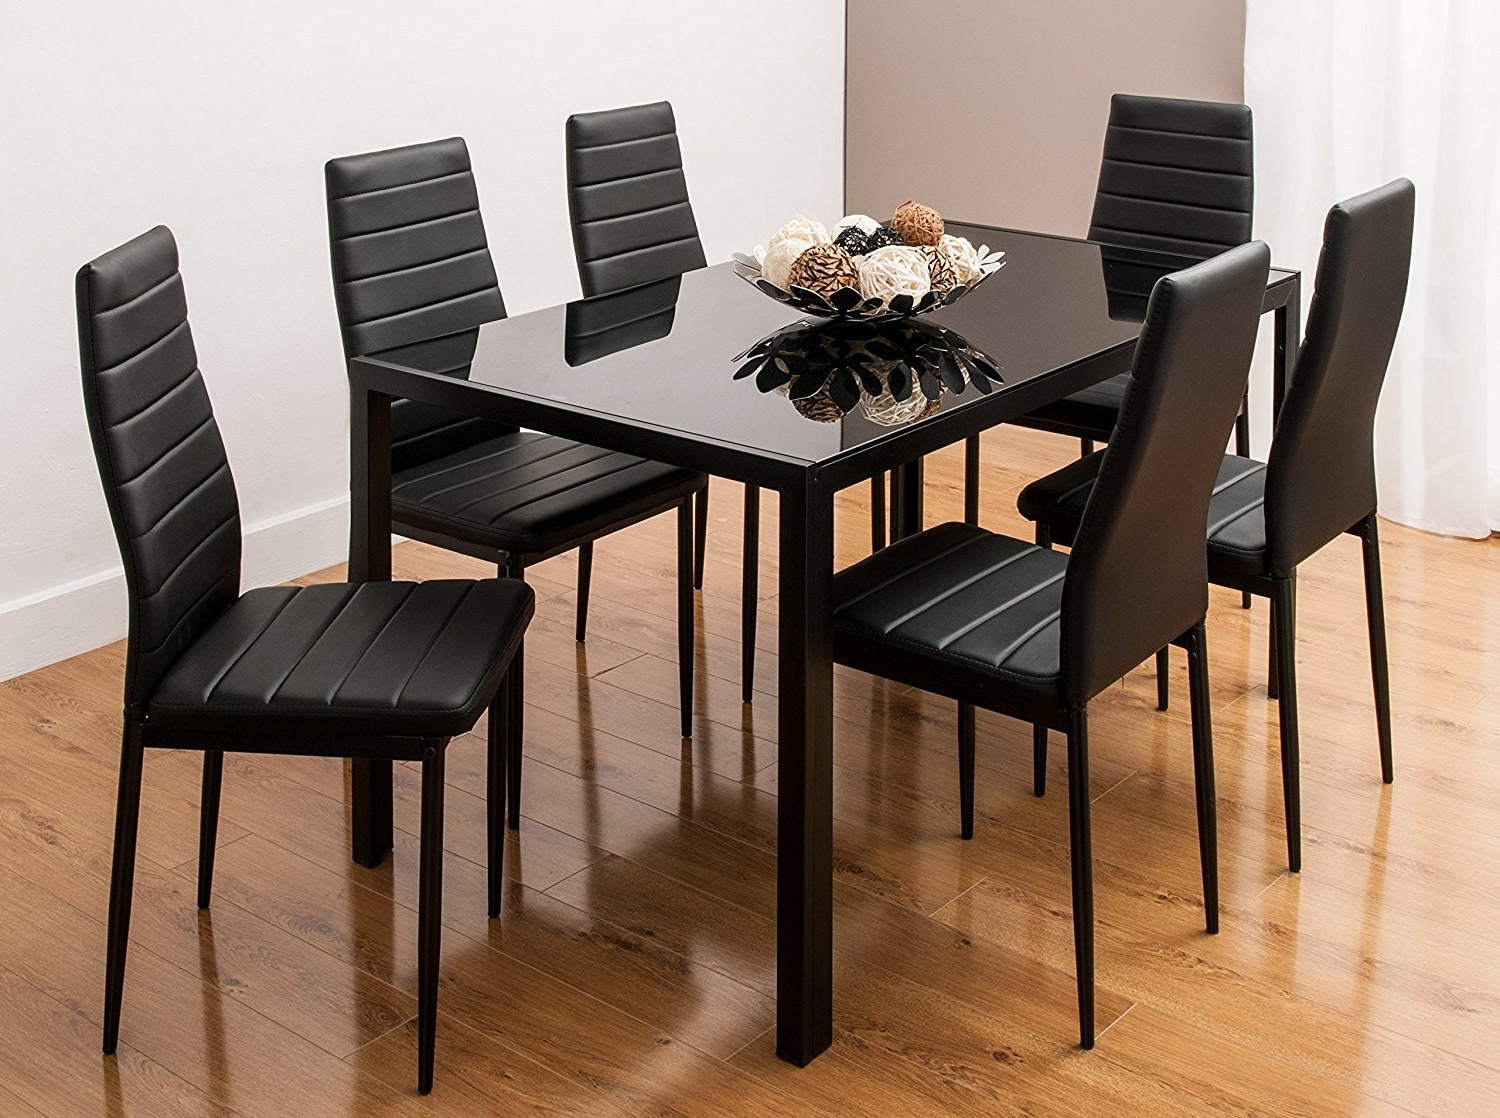 Rosenzweig 7 Piece Dining Set Inside Recent Maynard 5 Piece Dining Sets (Gallery 17 of 20)